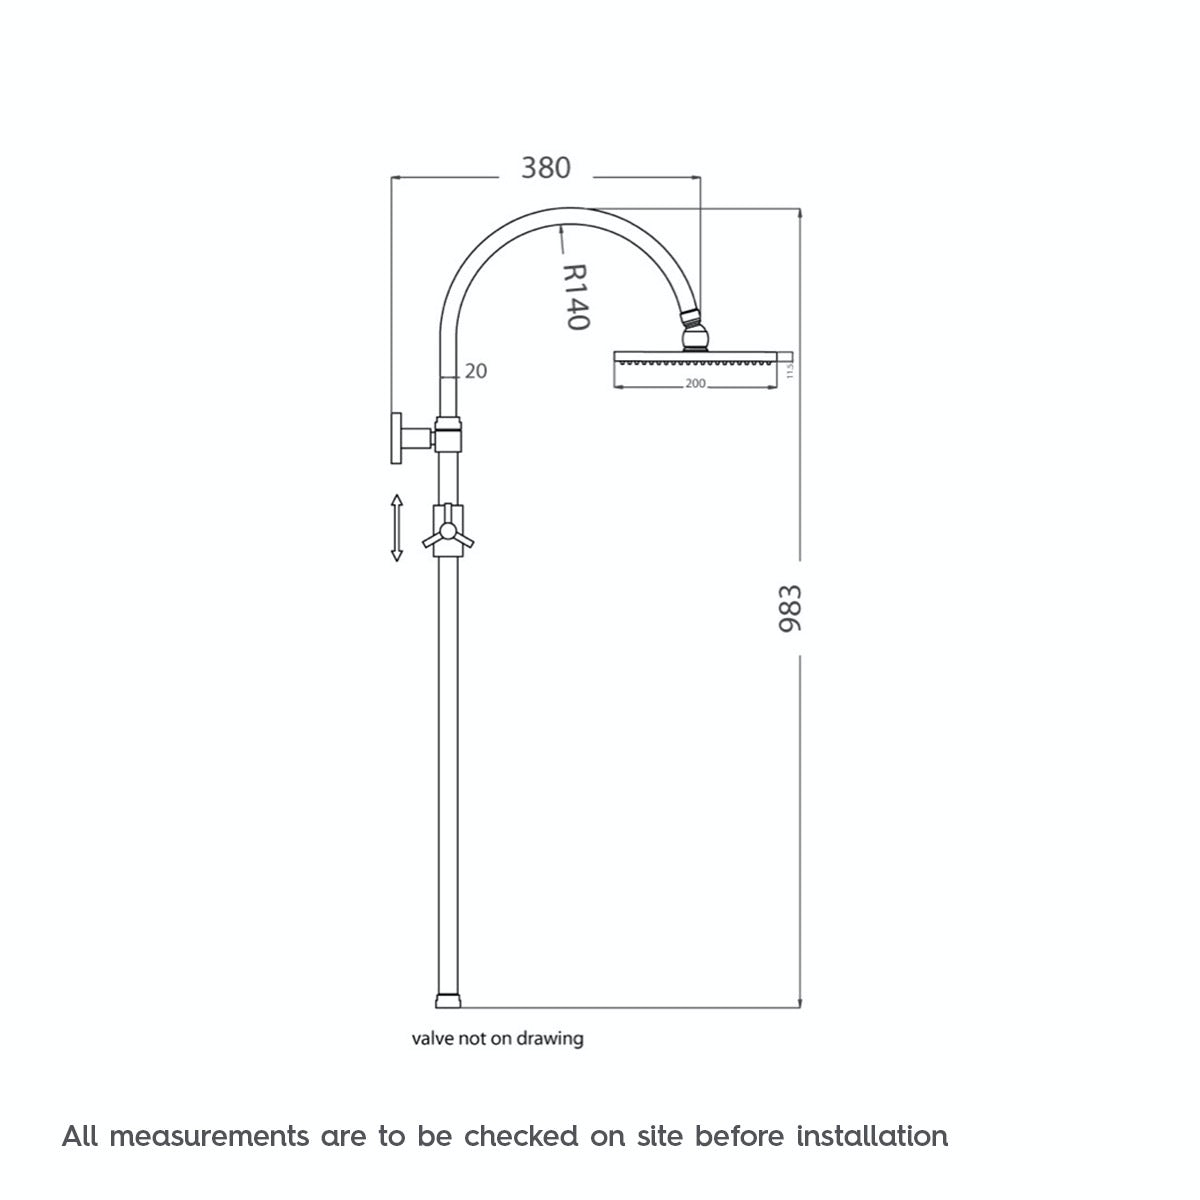 Dimensions for Orchard Matrix square shower riser system